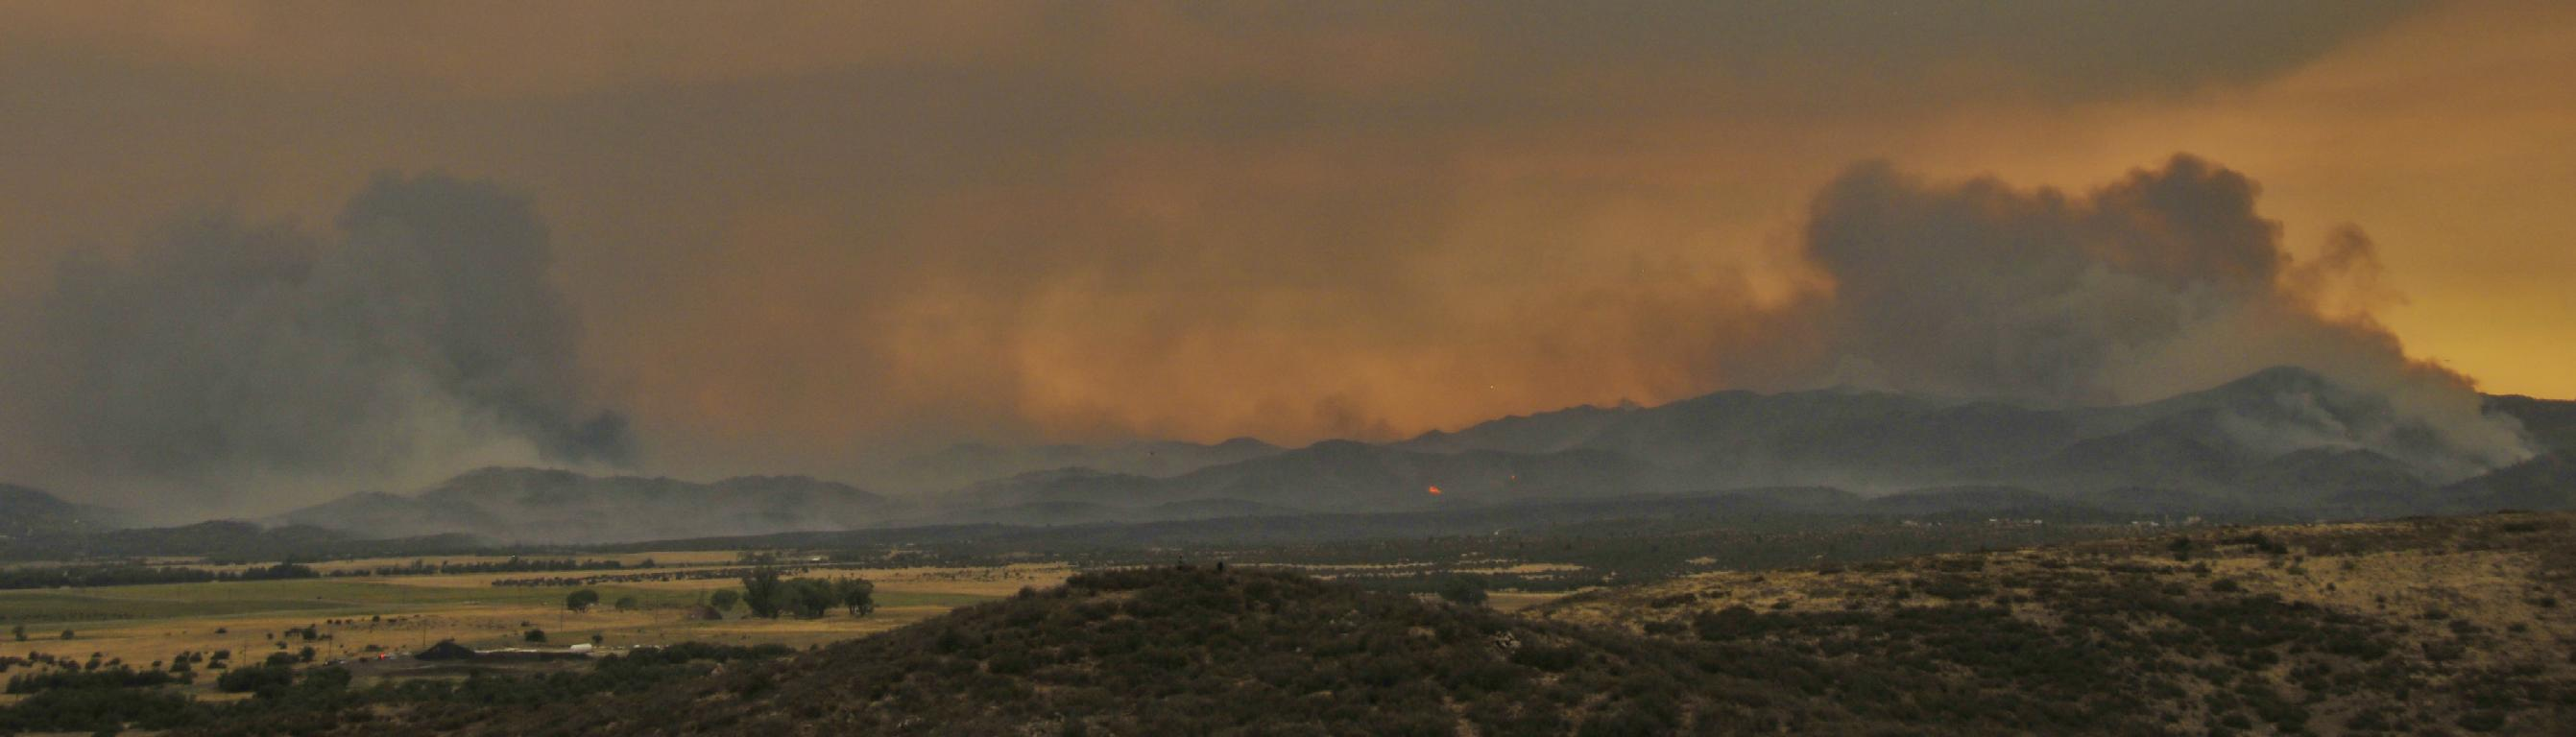 Late day view as fire engulfs Yarnell